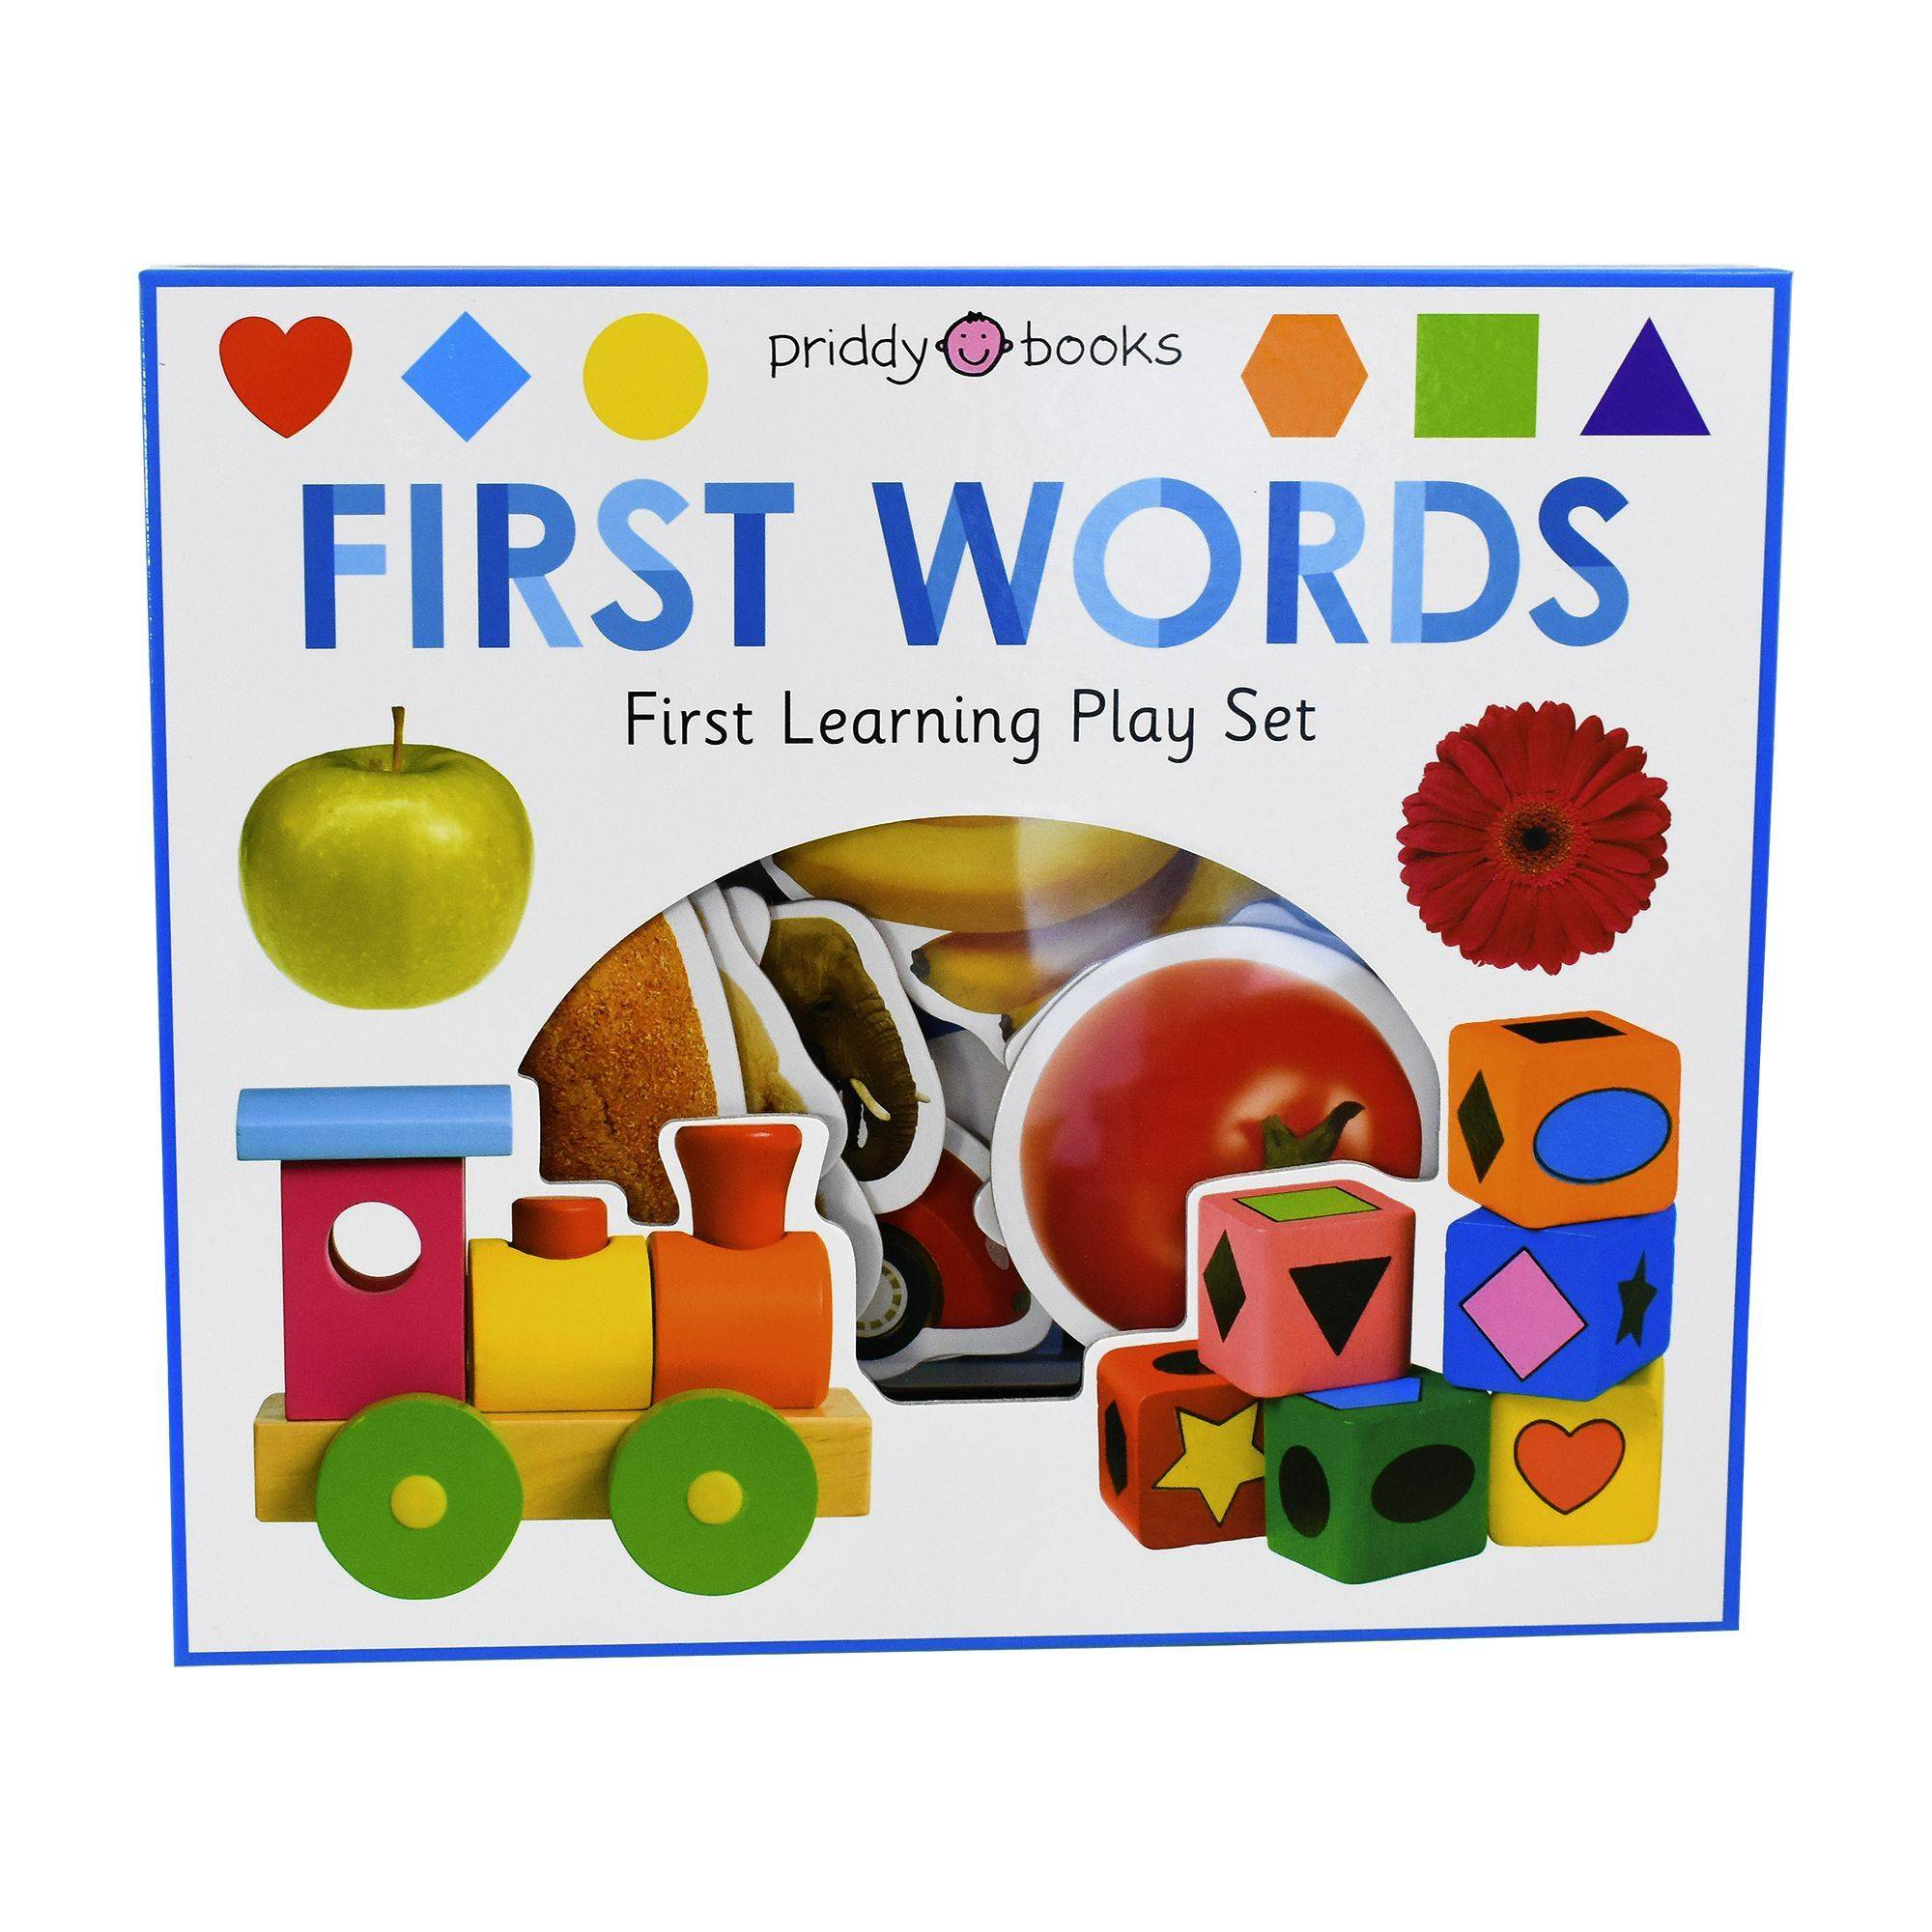 Priddy Books First Words First Learning Play Set by Roger Priddy - Ages 0-5 - Board Book